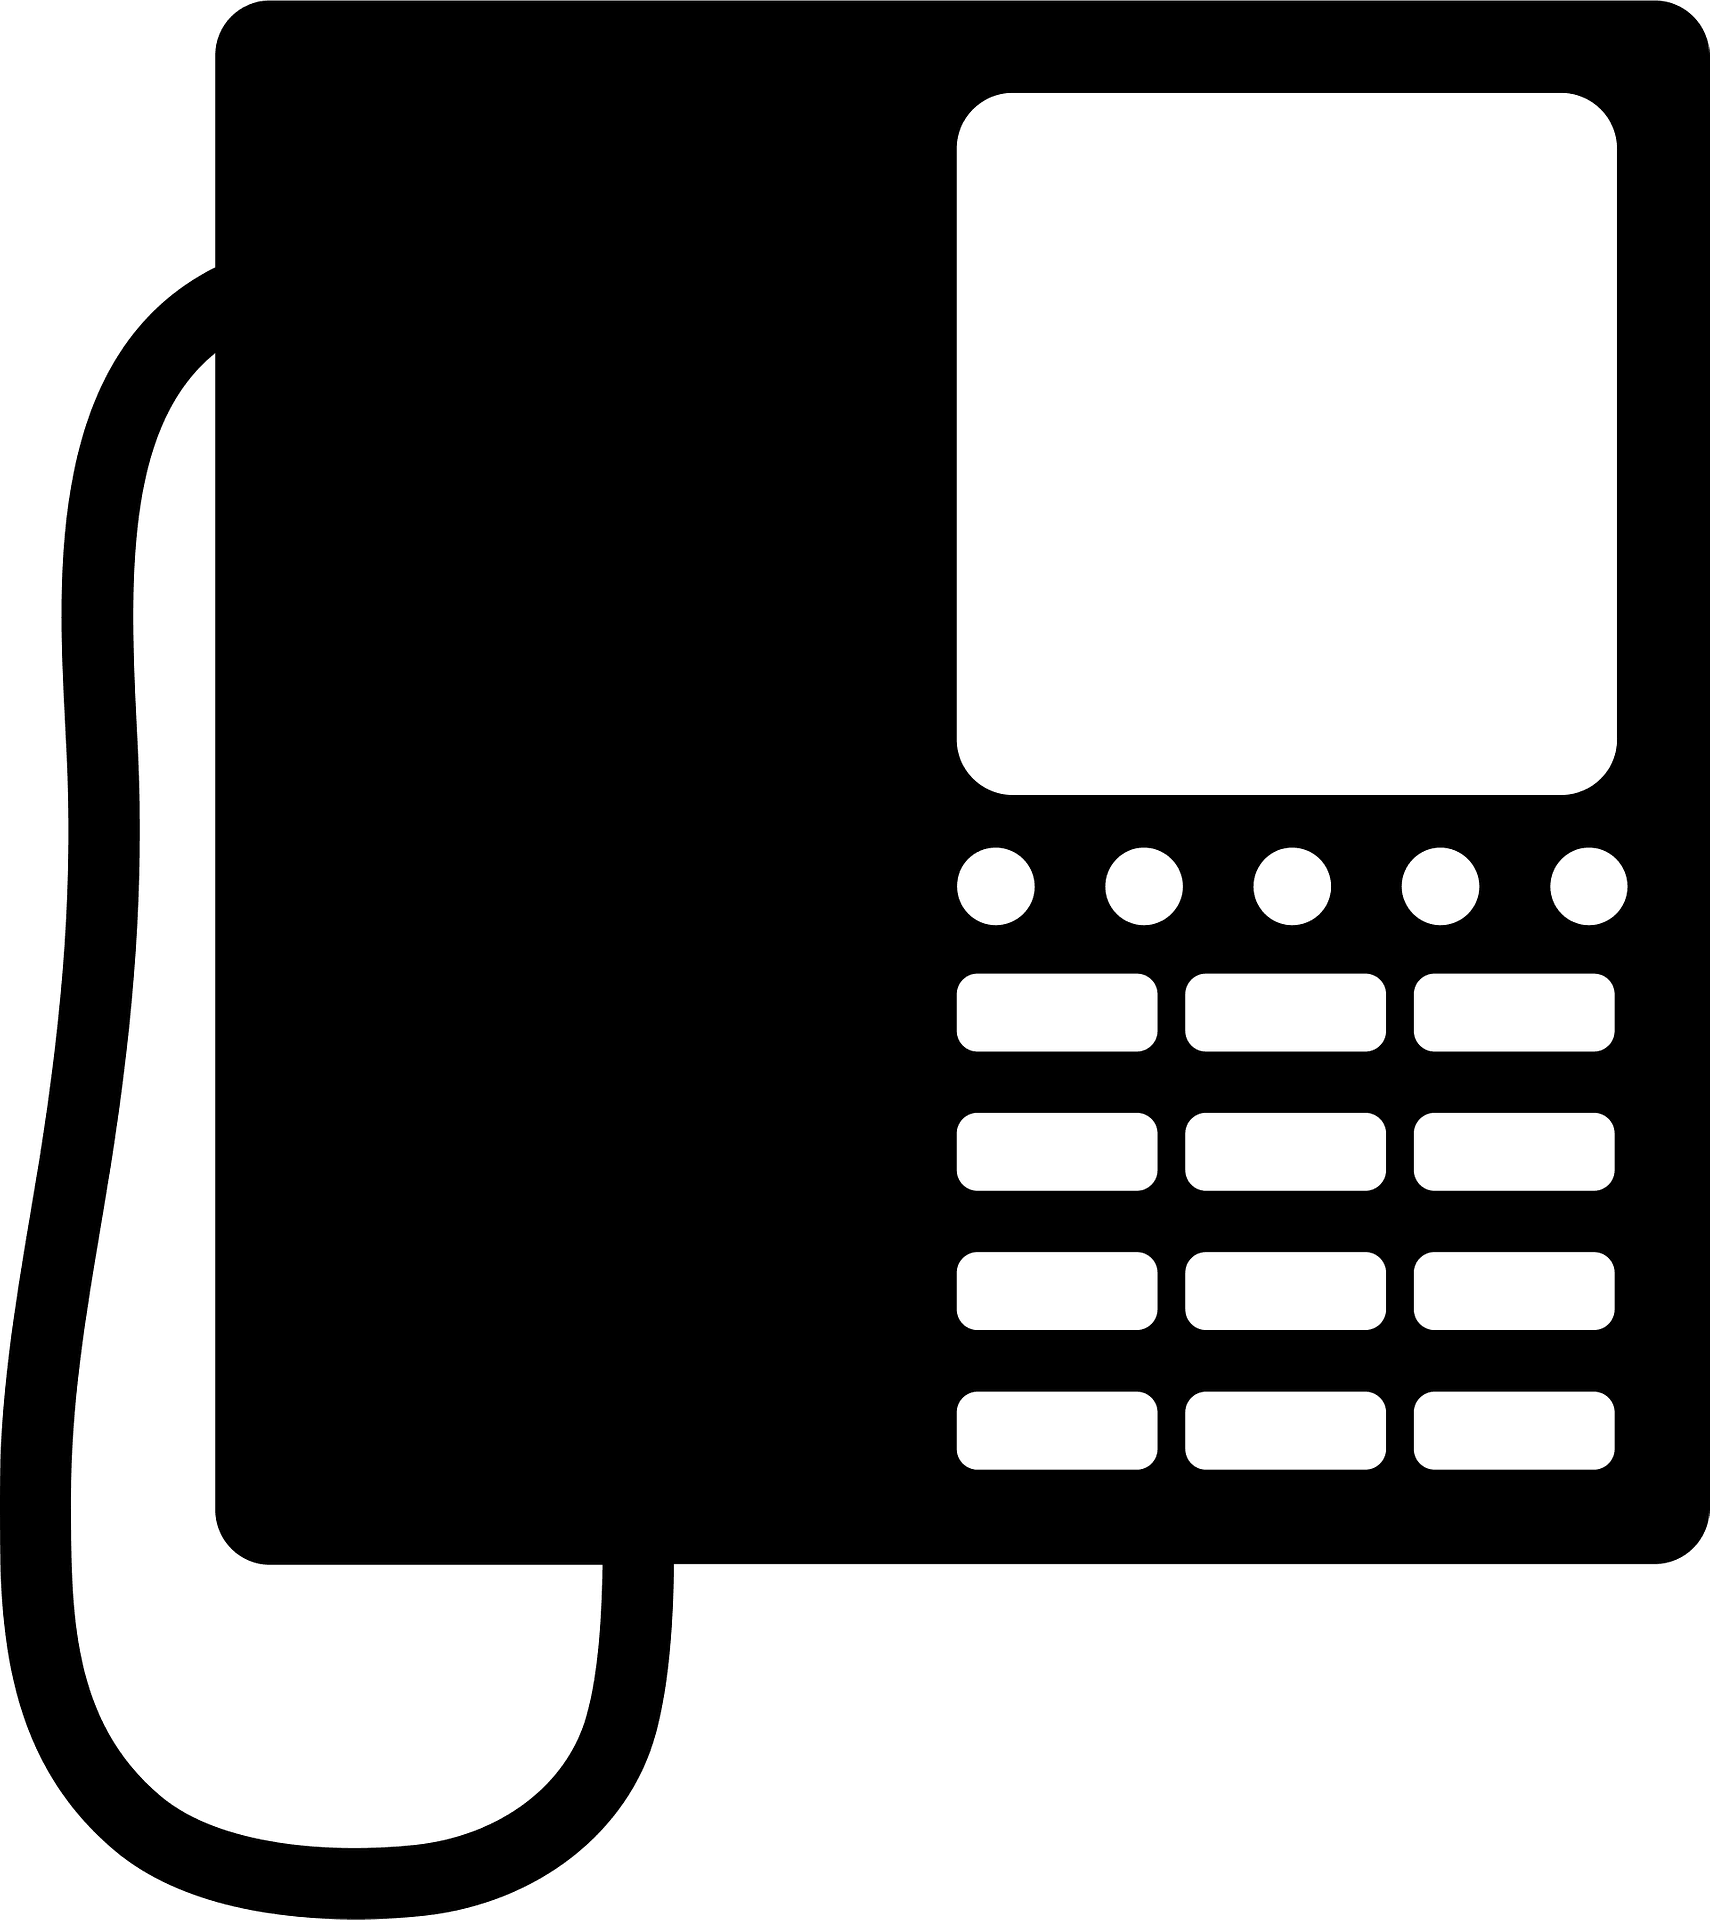 Business Phone Black And White Clipart Free Download Transparent Png Creazilla